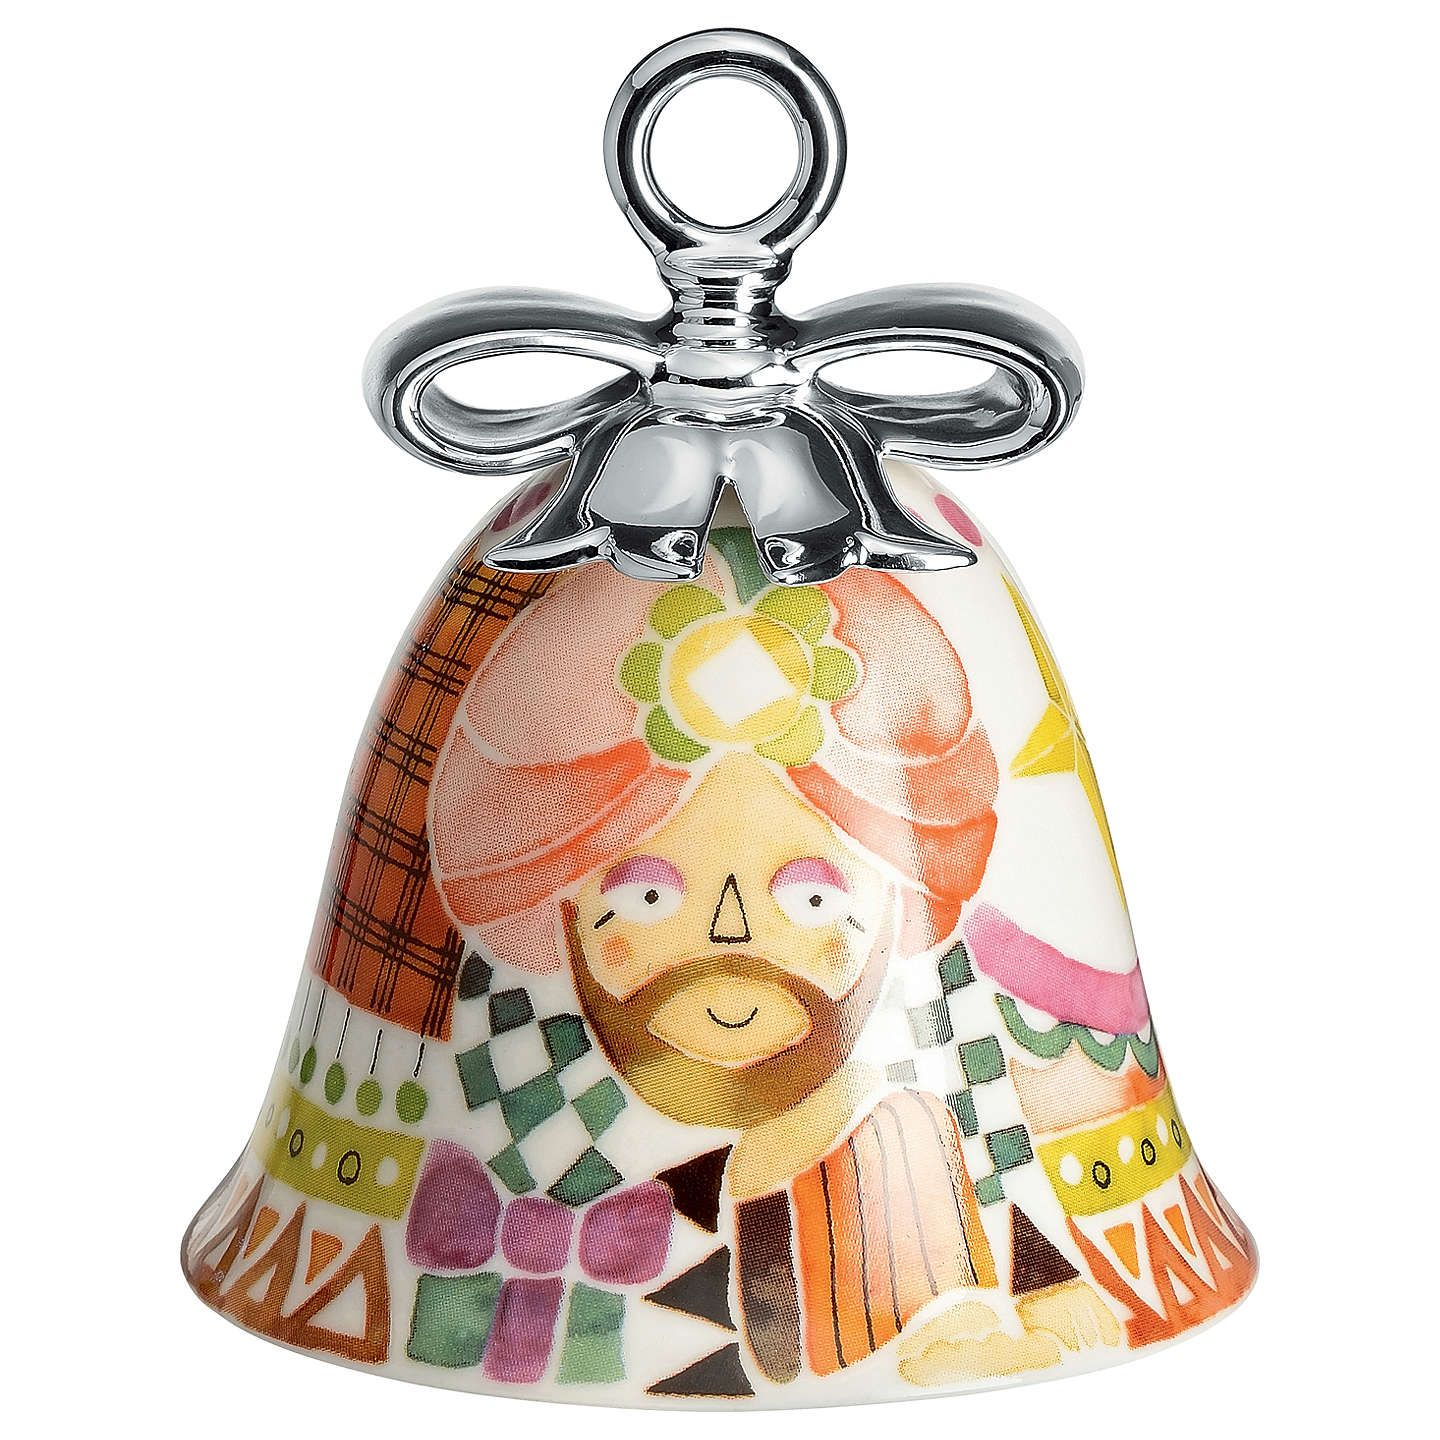 Christmas Bell Decorations Buyalessi 'holy Family' Caspar Christmas Bell Decoration Online At